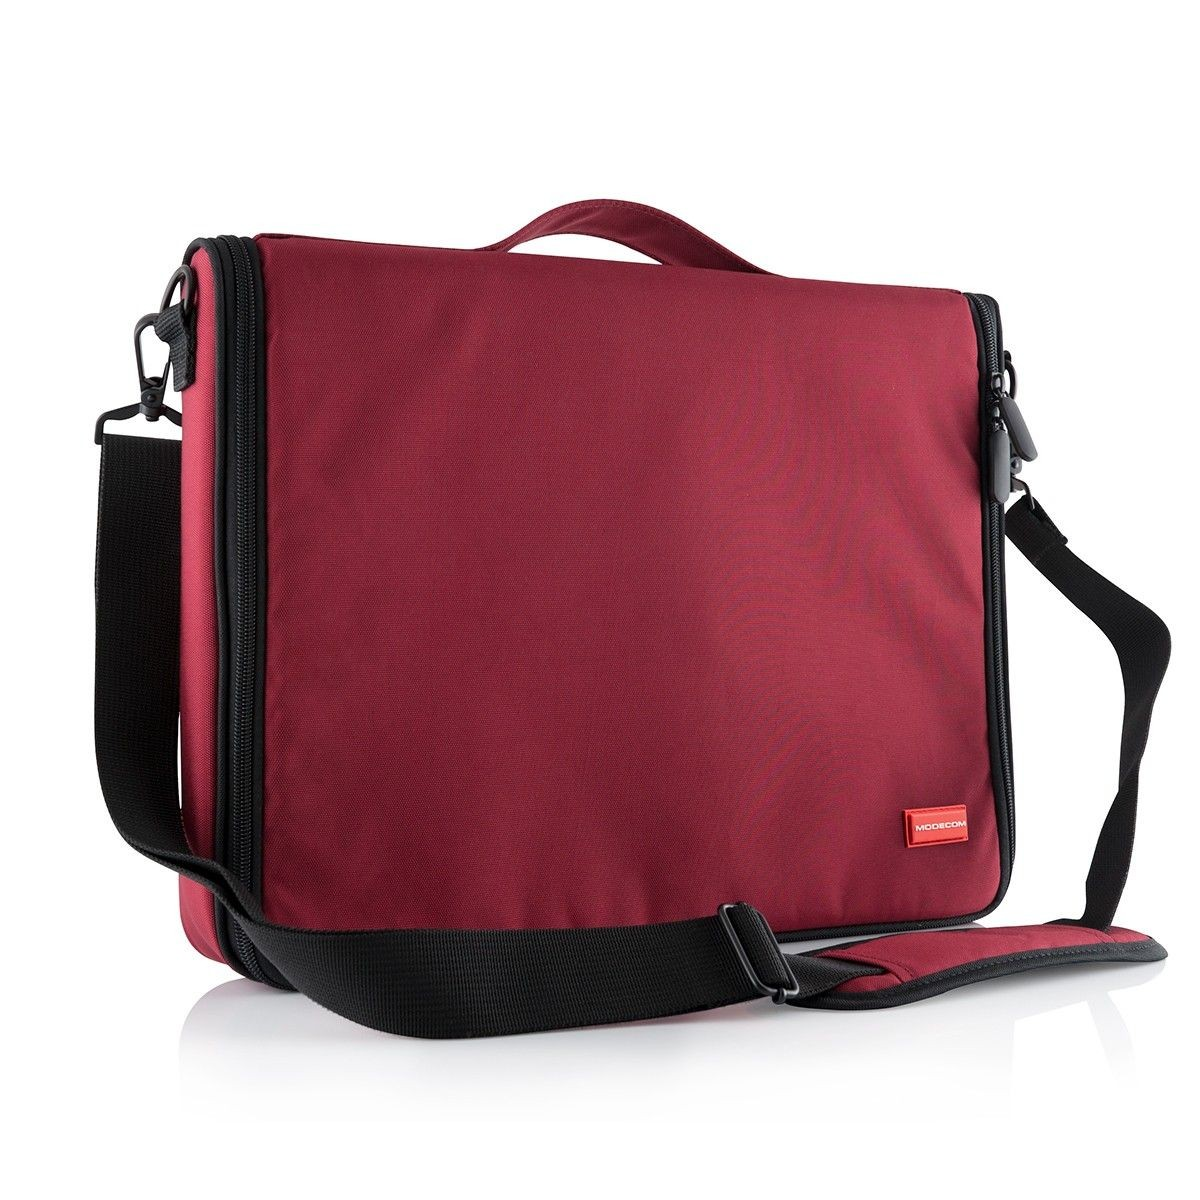 ModeCom Torba TORINO 15,6 do Laptopa 15,6'' Czerwona